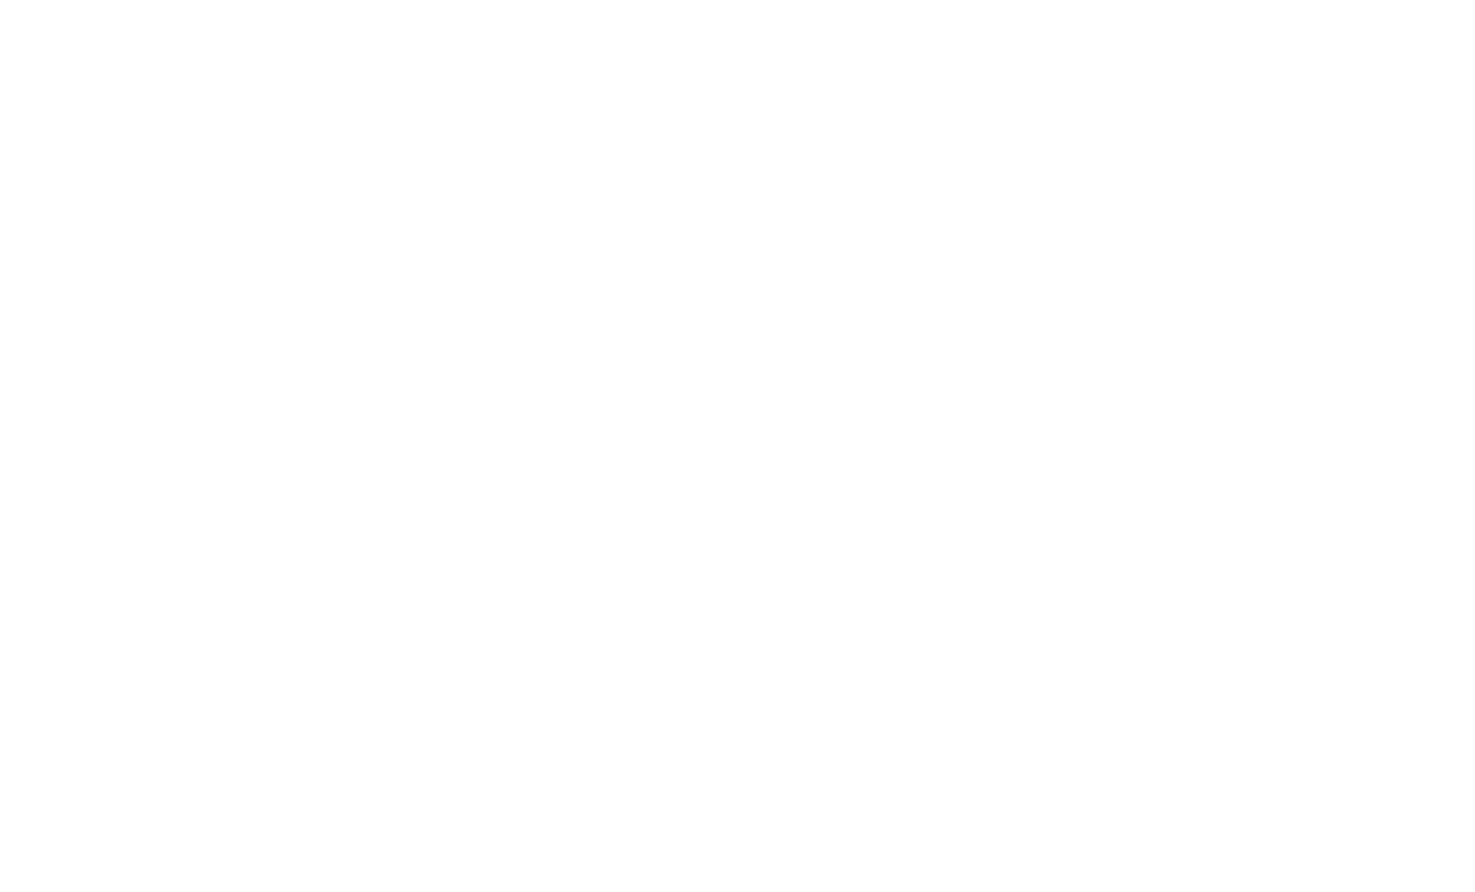 The Domestic Abuse Service logo in white